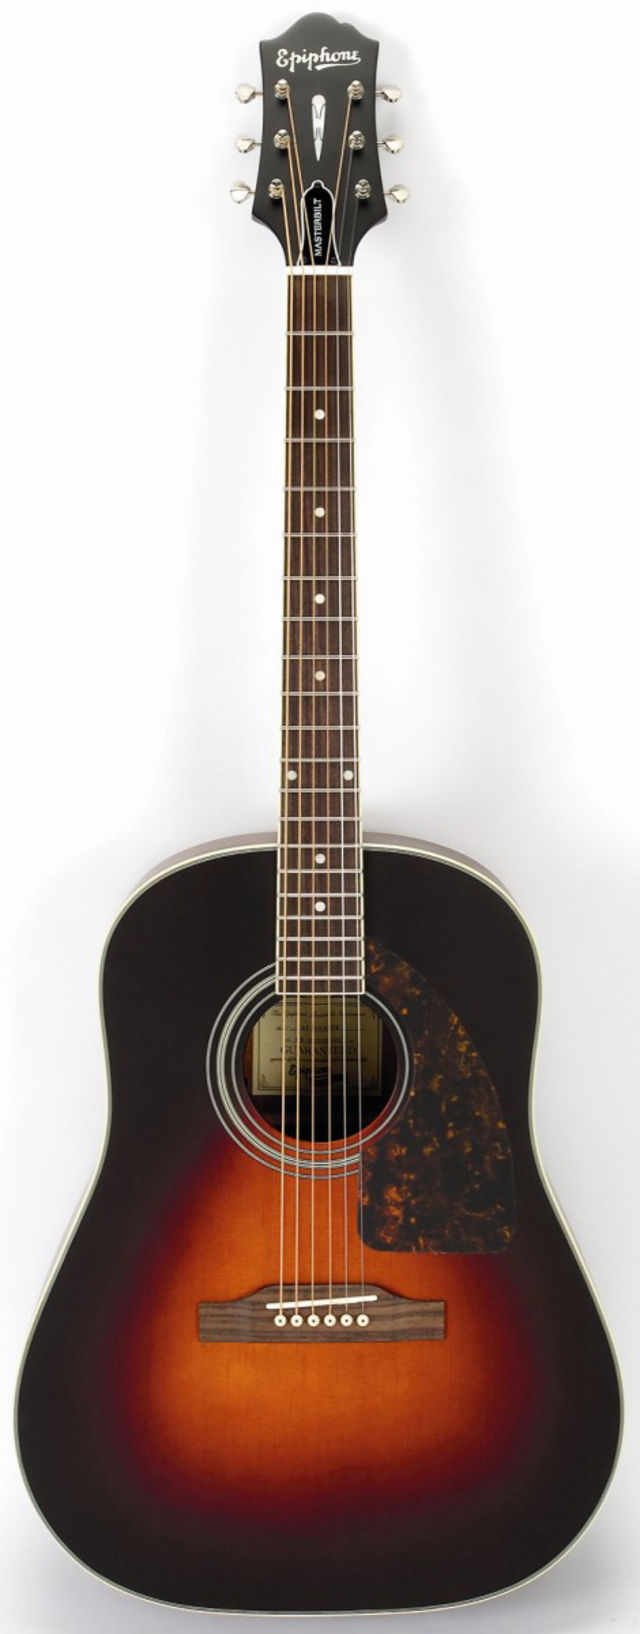 The Masterbilt AJ-500M: try it and you'll want it!